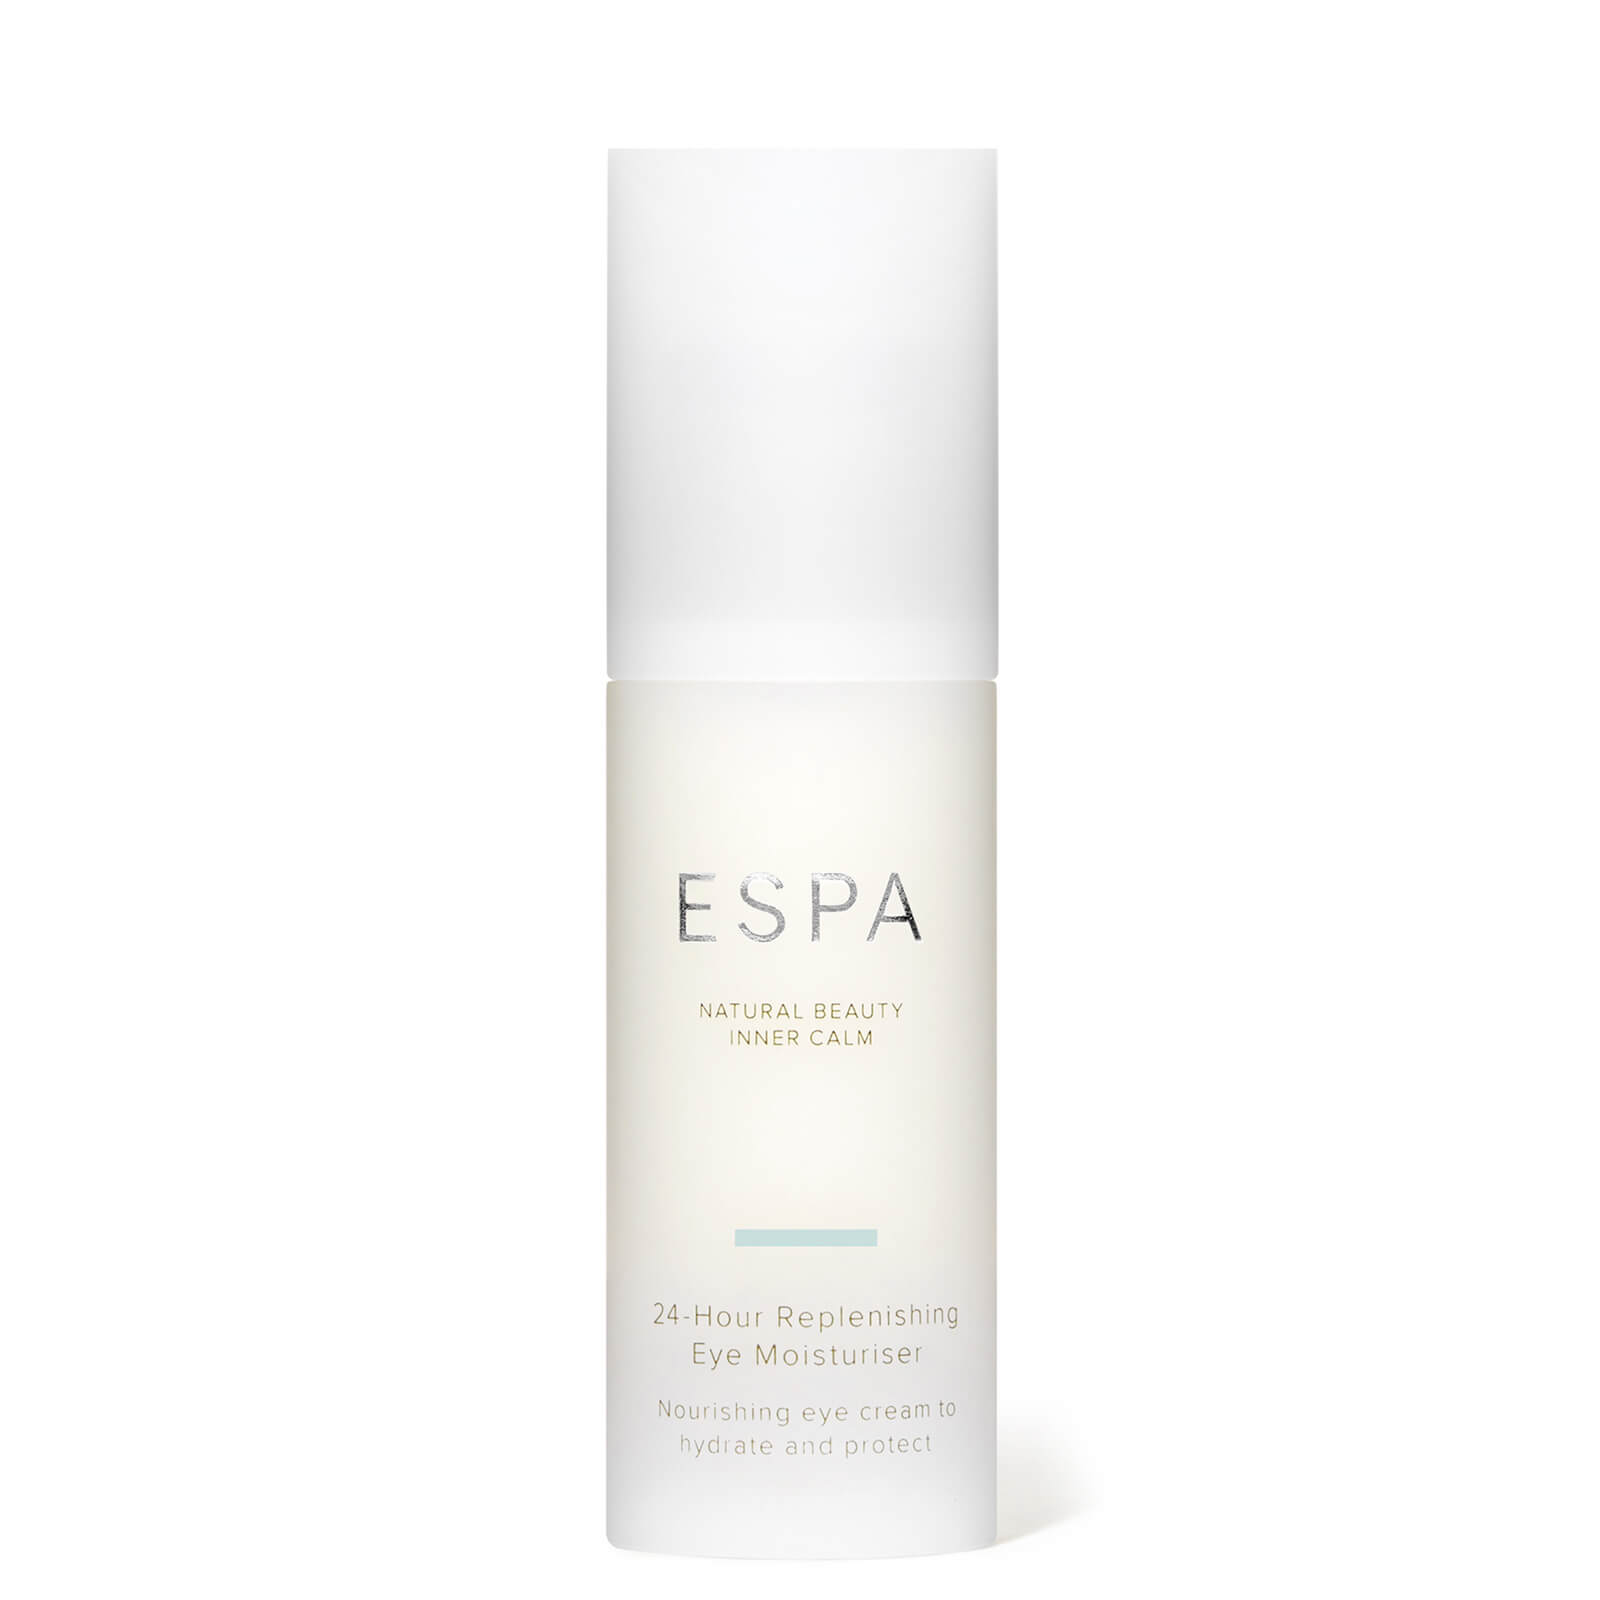 24-Hour Replenishing Eye Moisturiser